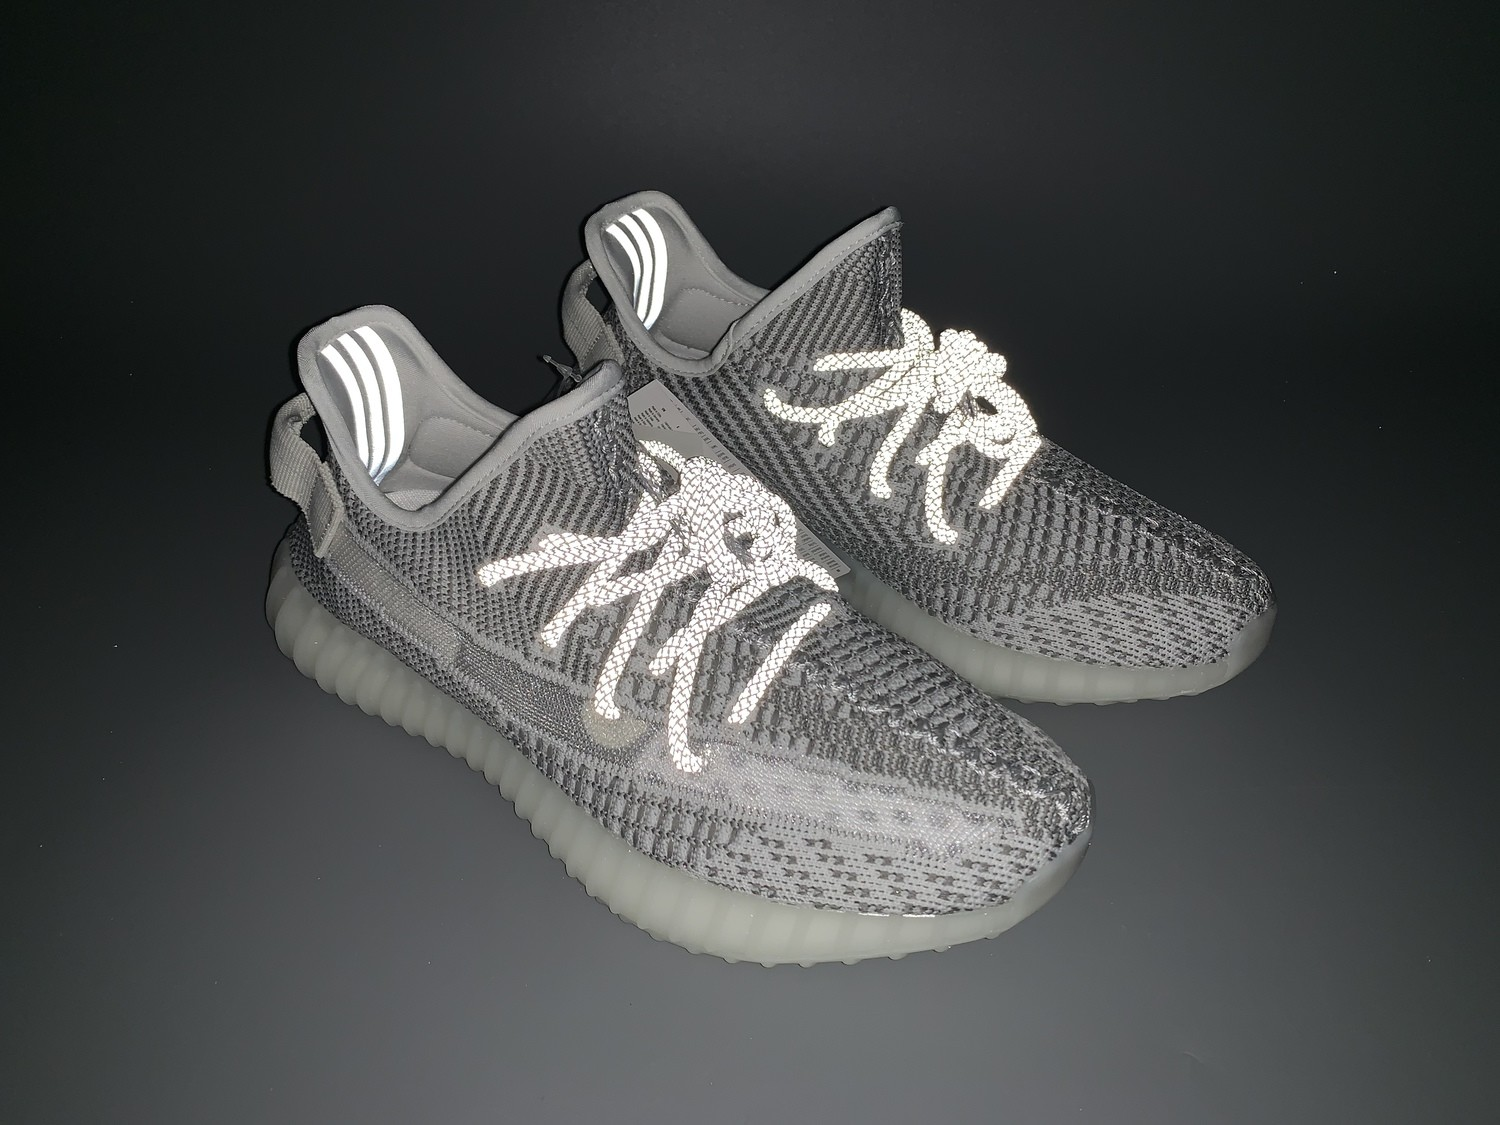 outlet store 48421 7c428 Mens/Womens Adidas Yeezy Boost 350 V2 Non-Reflective Static EF2905 5.05.0  out of 5 stars5100%100%40%0%30%0%20%0%10%0%See all reviews 3 reviews | Ask  ...